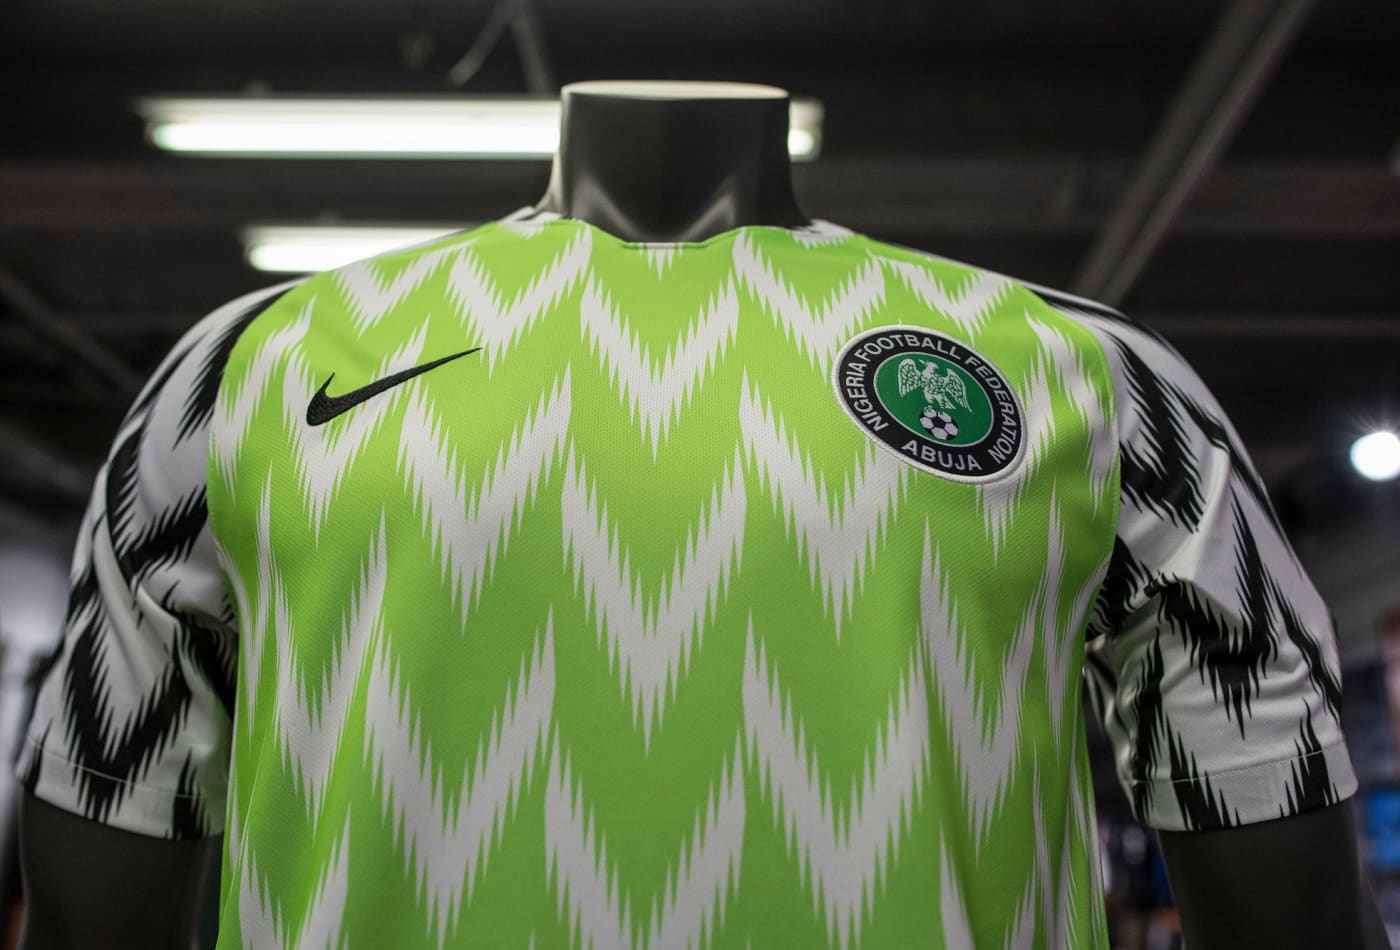 61f582dd7 The Nigeria Super Eagles jersey for the 2018 World Cup in Russia has been  hugely popular